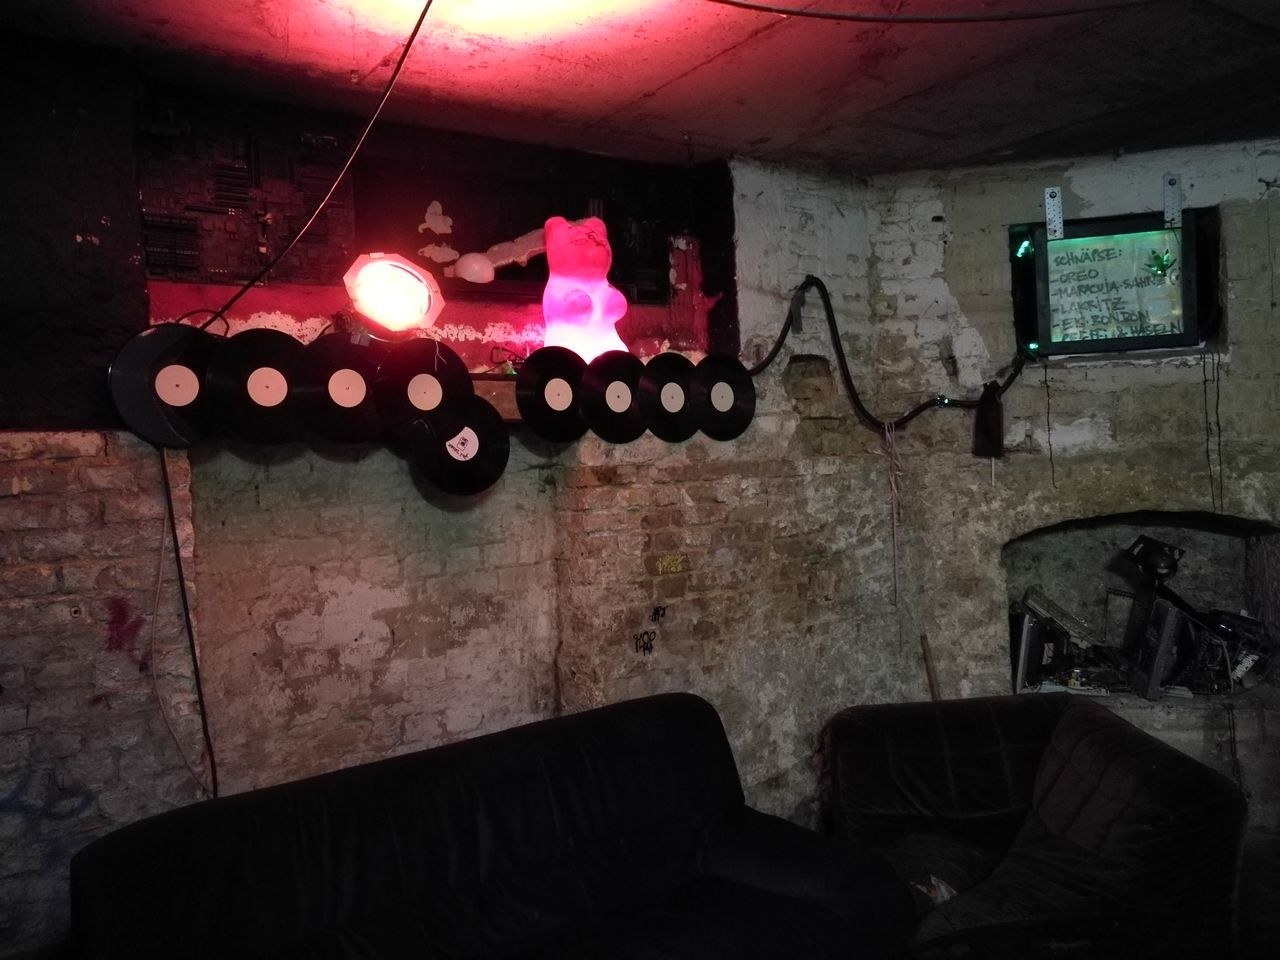 Illuminated Music Indoors  No People Night Club Vinyl Decoration Germany Dark Basement Old Buildings Chamber Underground Studio Capture Berlin Music Production Home Is Where The Art Is Lifestyle